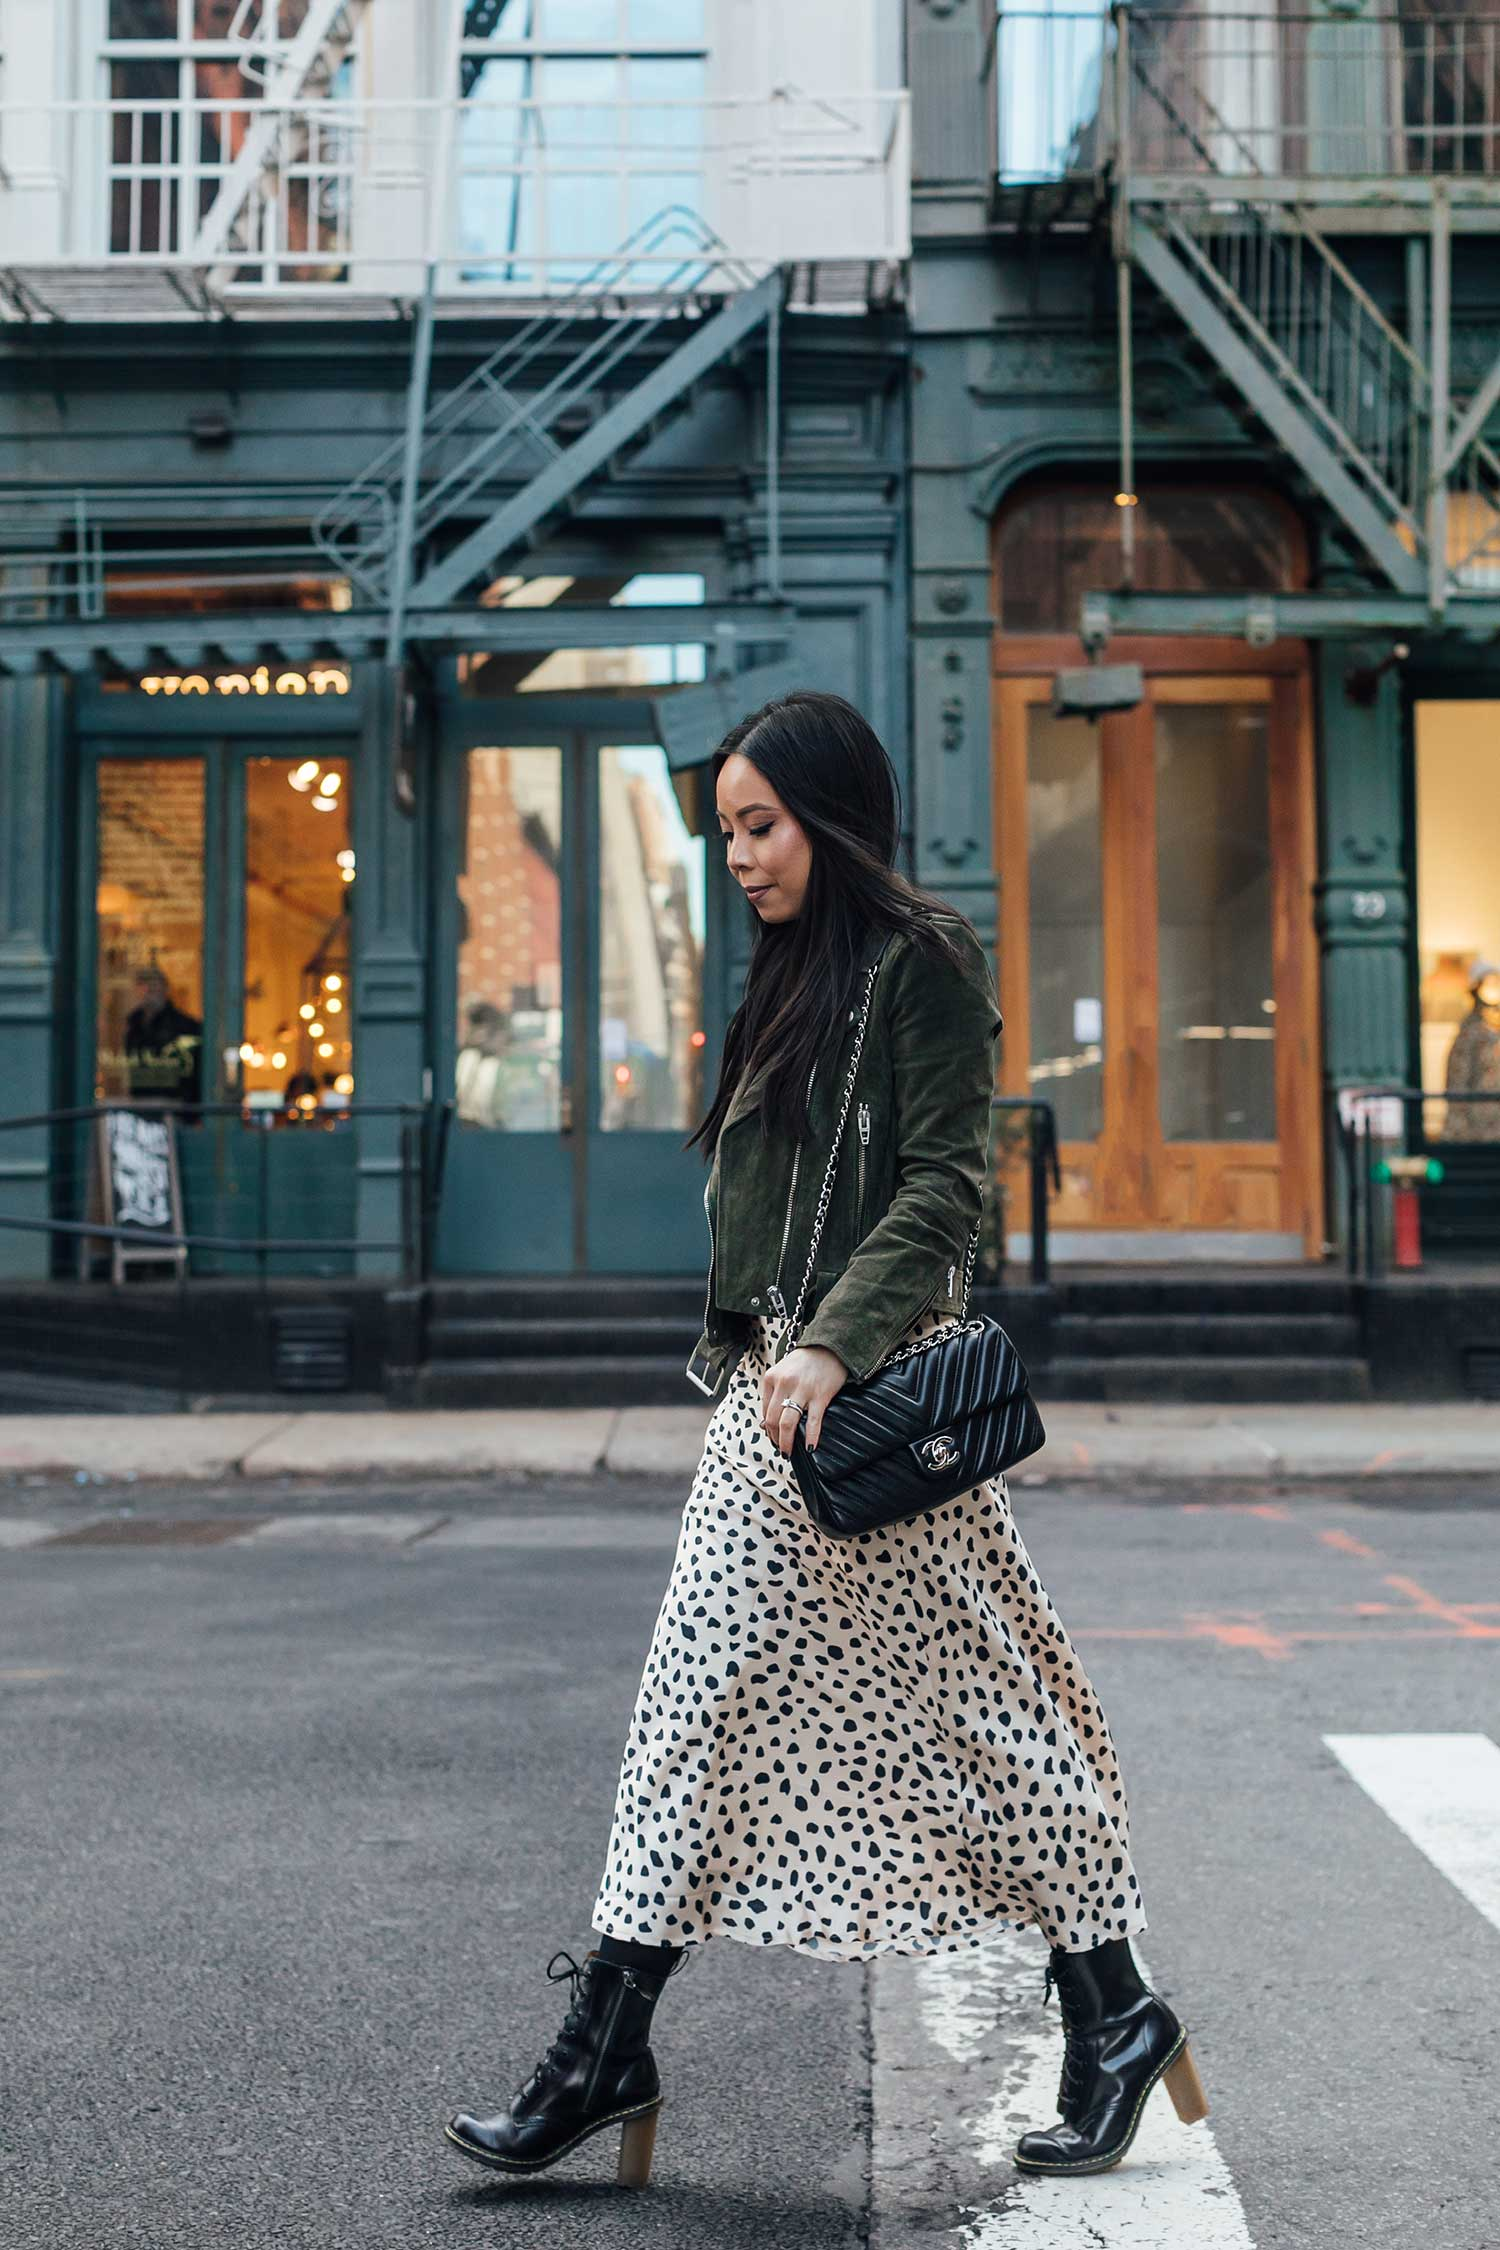 60d0ec83a5a1 Blank NYC Suede Moto Jacket in Herb | Lululemon Swiftly Tech Long Sleeve  Crew | Chanel Chevron Bag | Lovers Friends Madalena Midi Skirt (borrowed  from Sydne ...